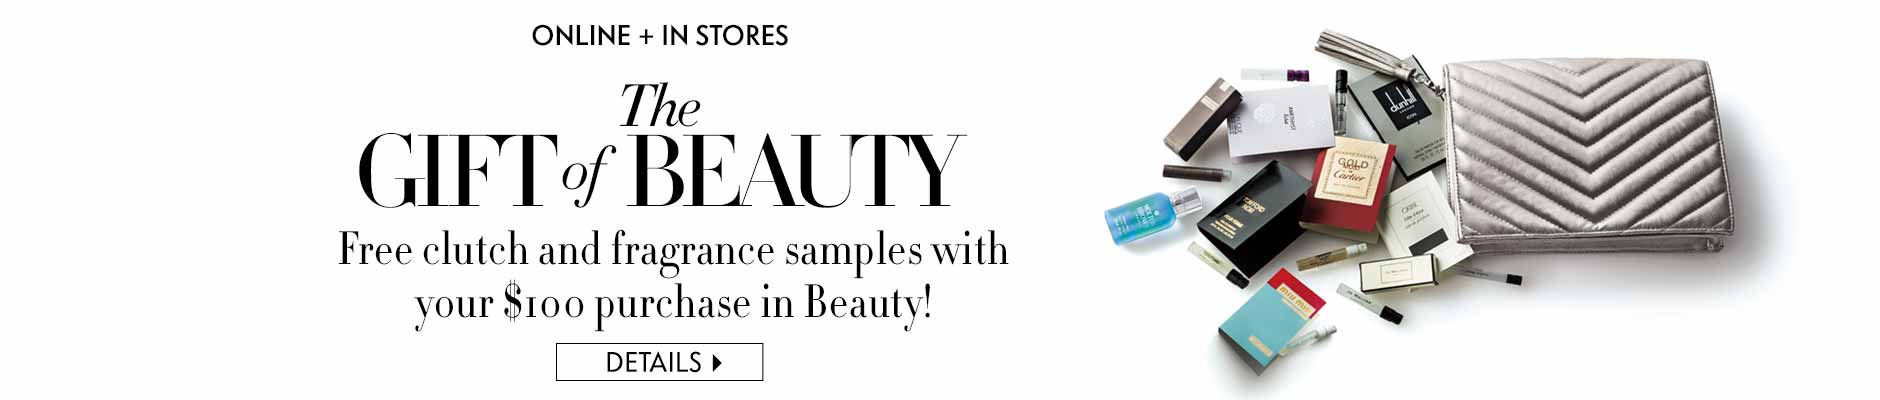 The Gift of Beauty: Free clutch and fragrance samples with purchasee